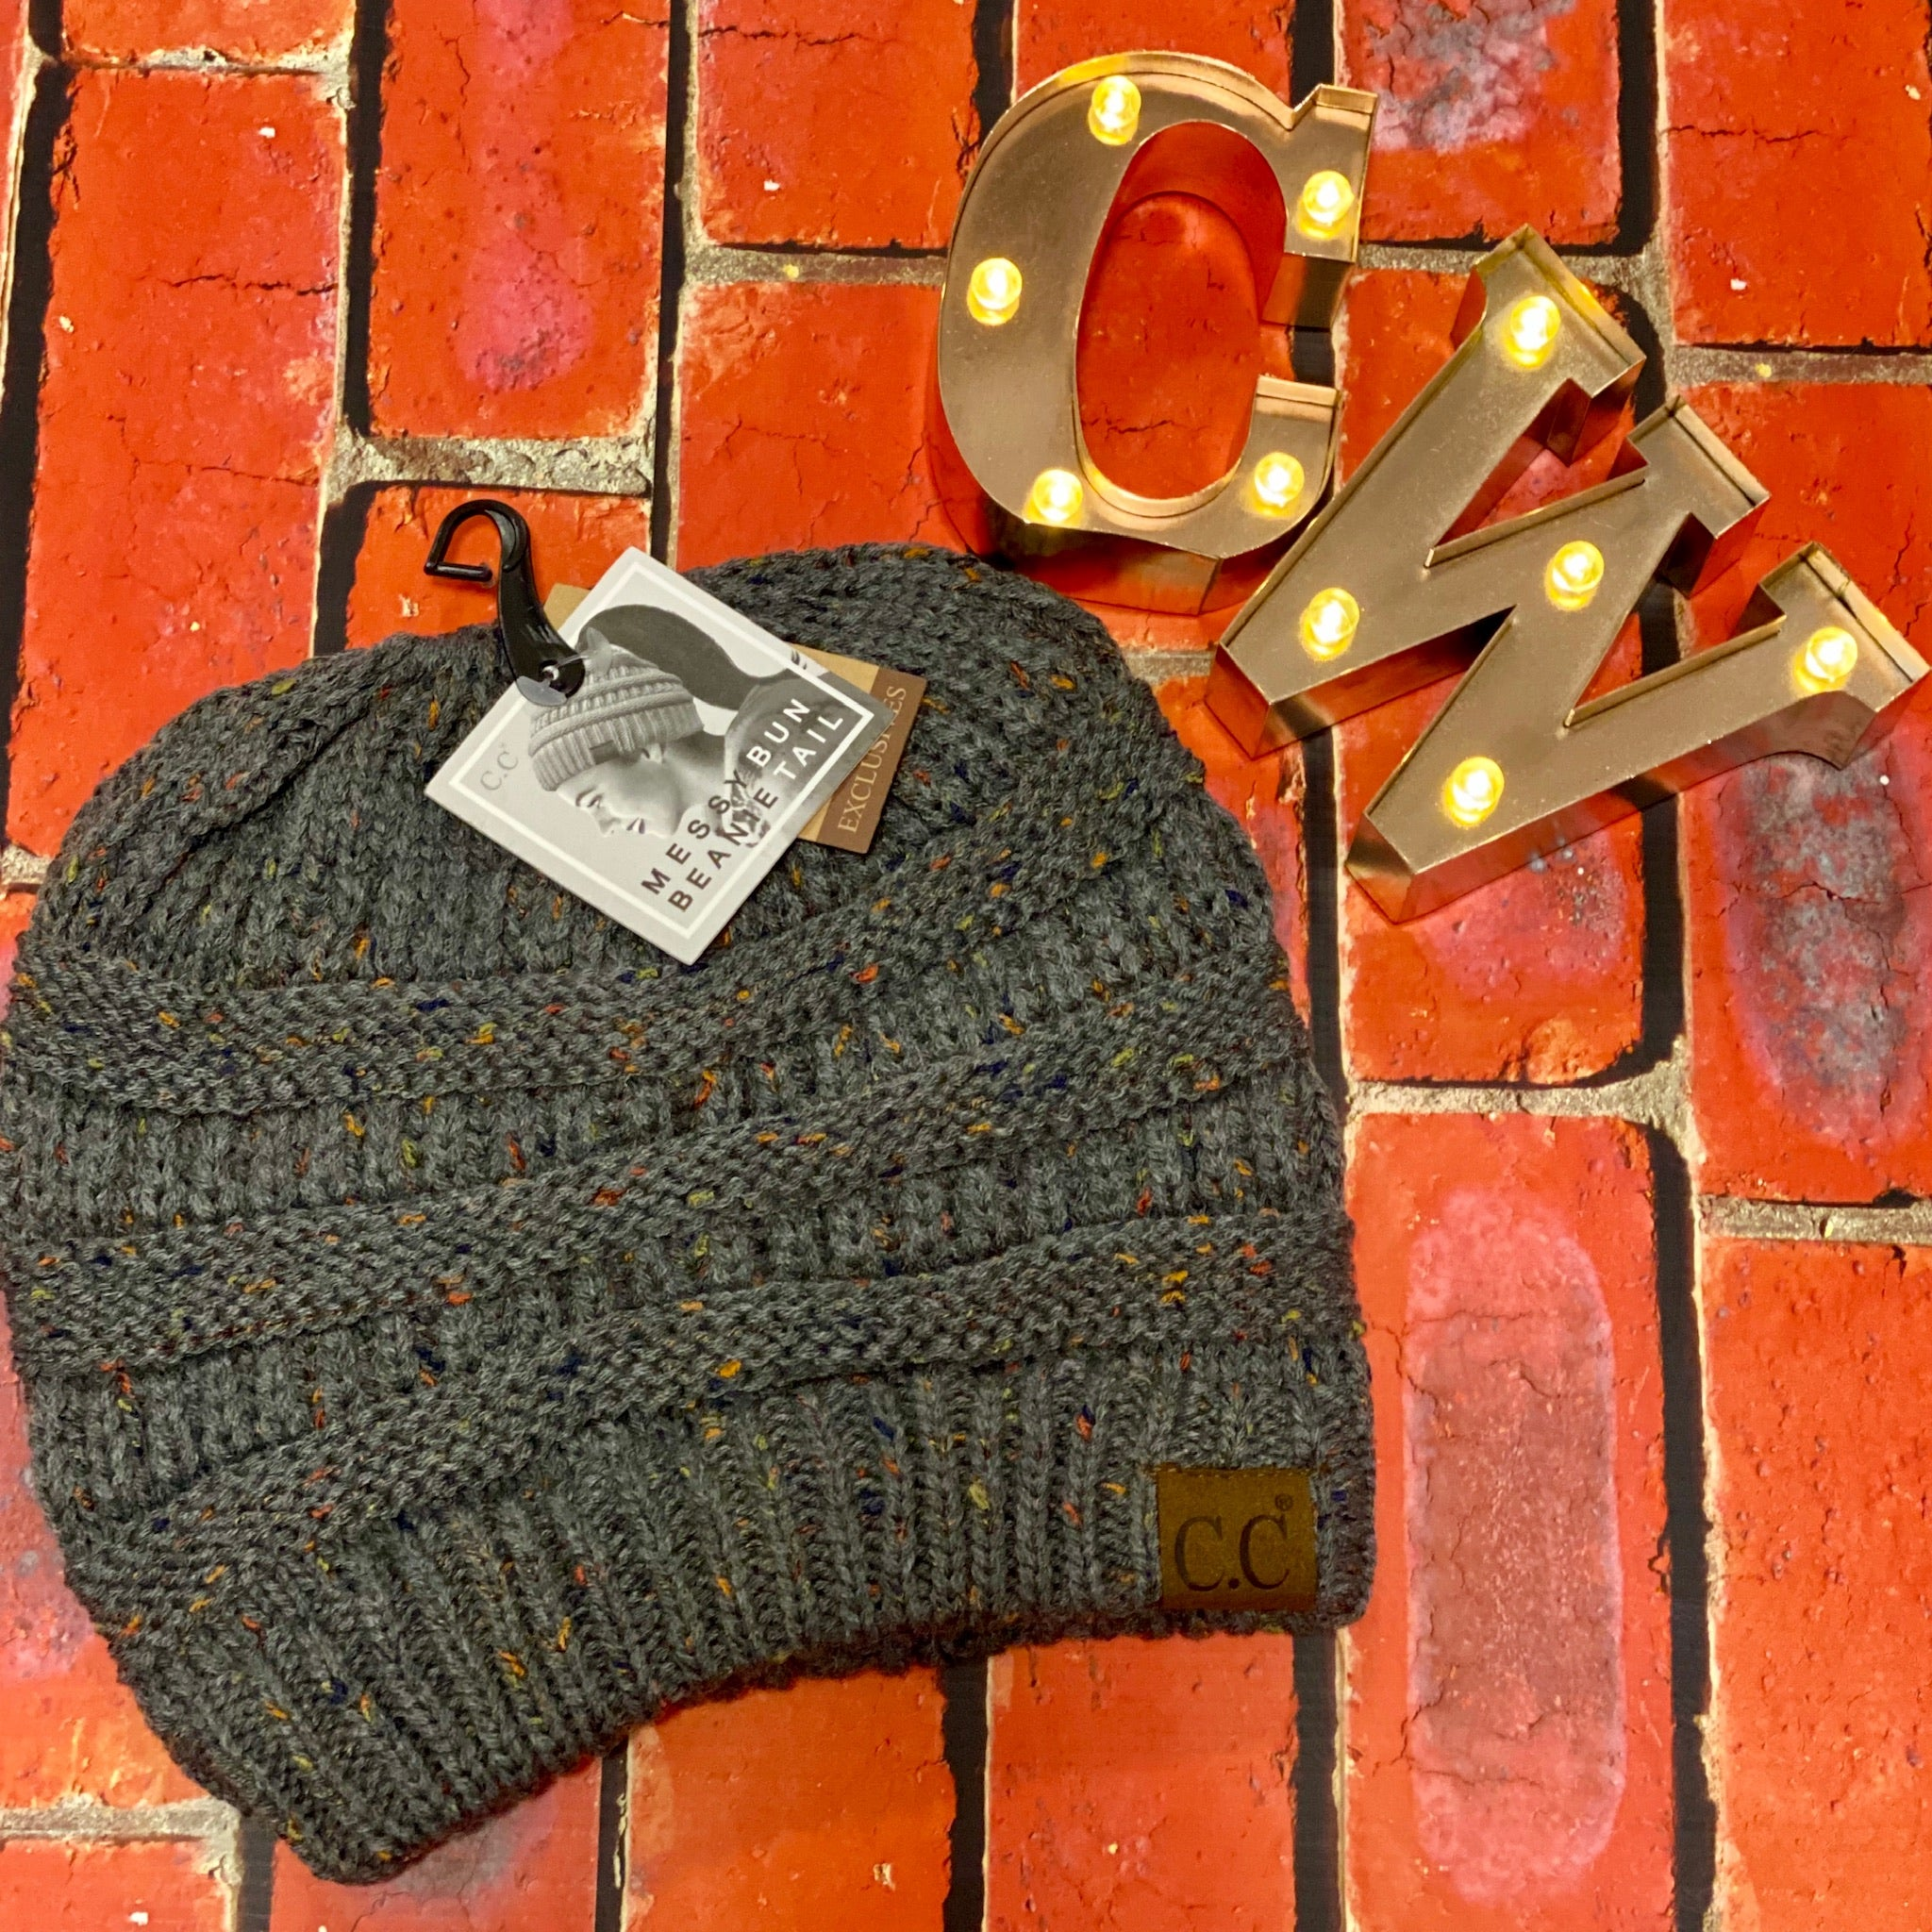 C.C Ponytail Beanie - Dark Grey